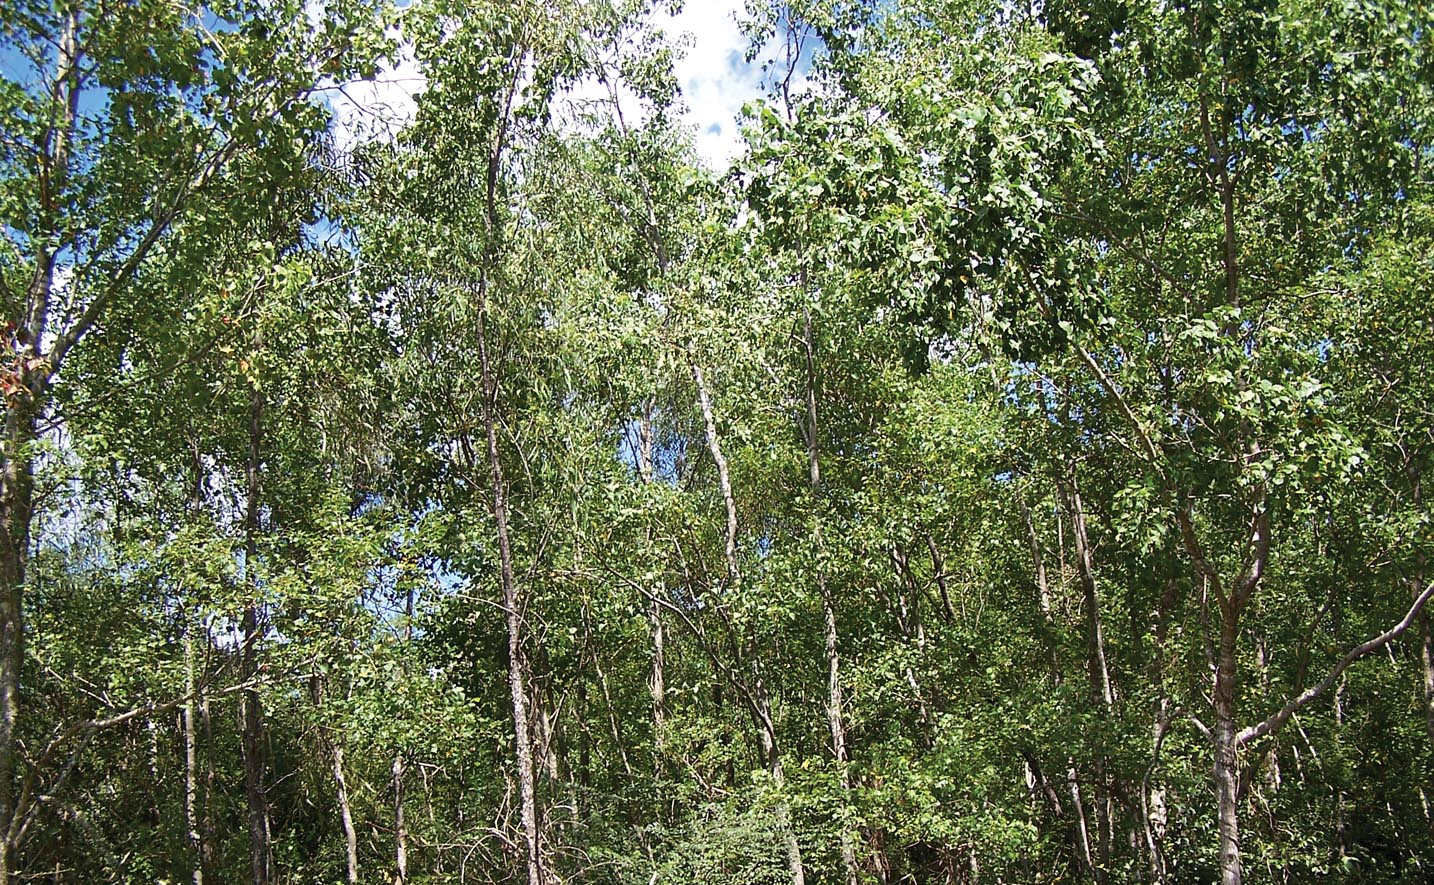 Chinese Tallow Trees a Potential Bioenergy Crop for Louisiana